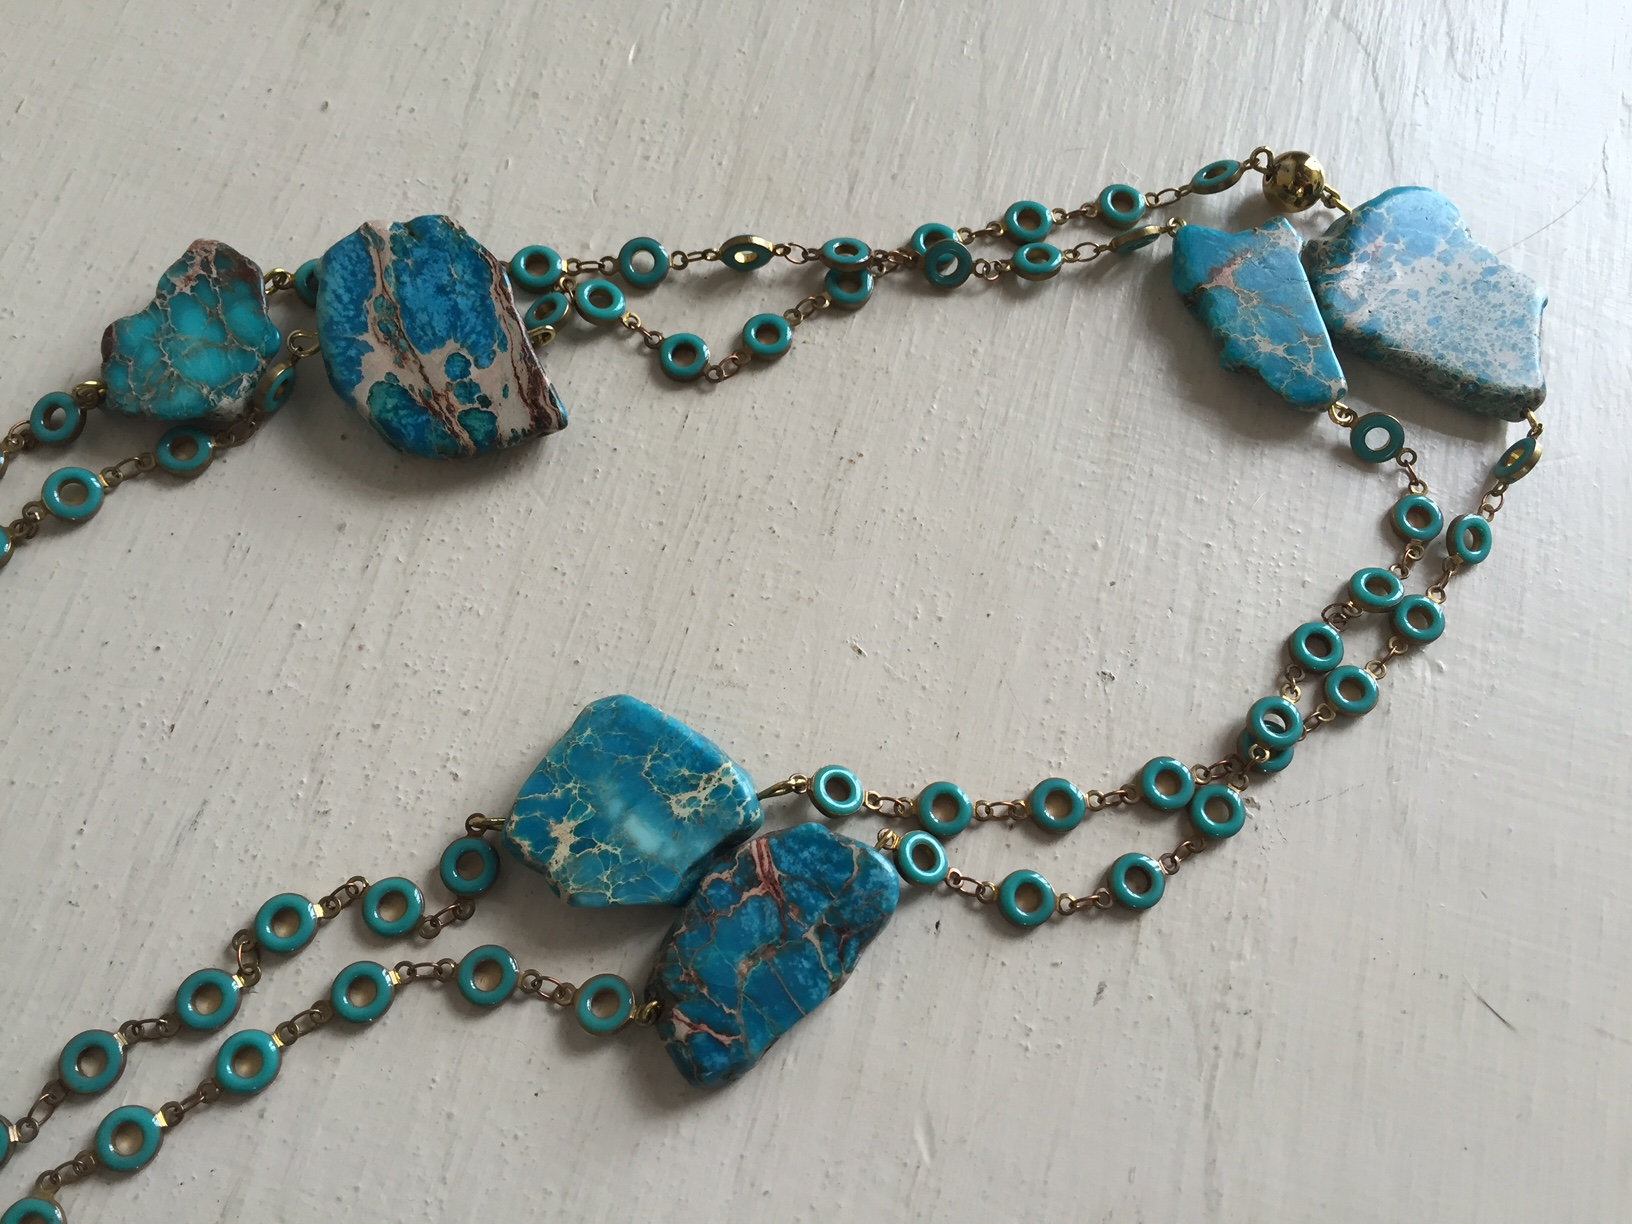 If your mother is anything like our moms, she would love to add some more turquoise to her collection.